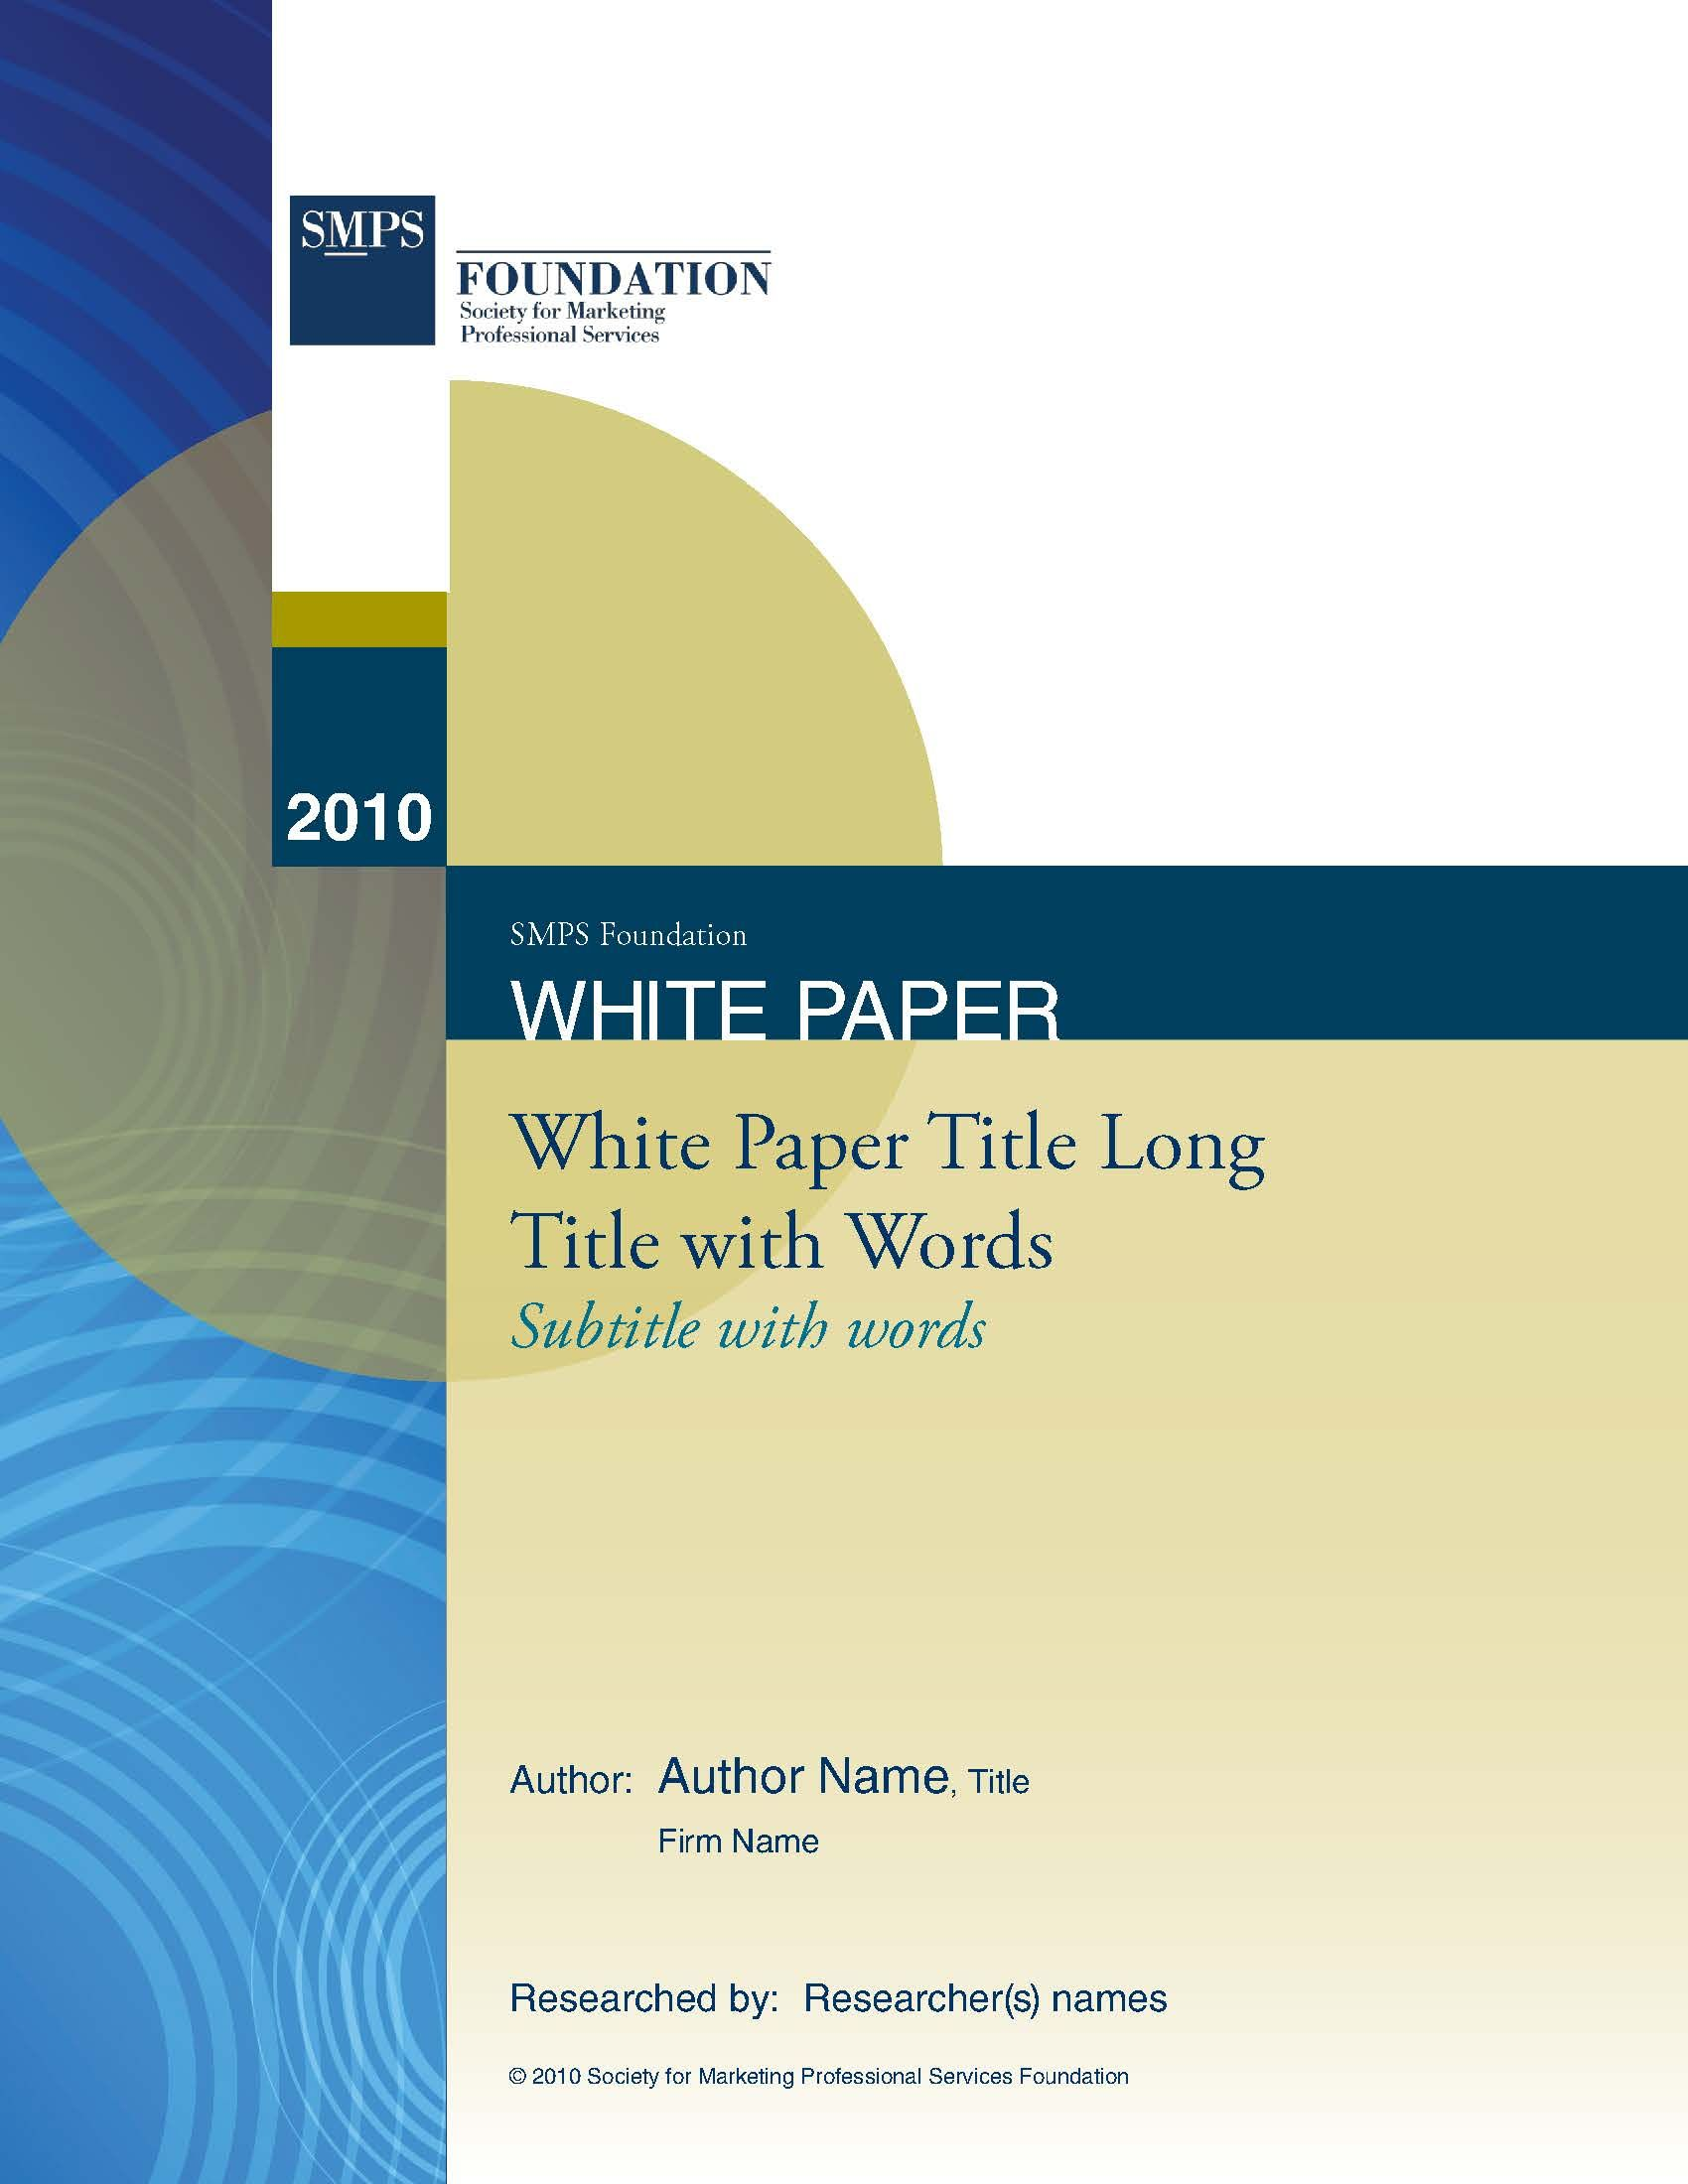 Smps National White Paper Template Design In Word  Kk Consulting